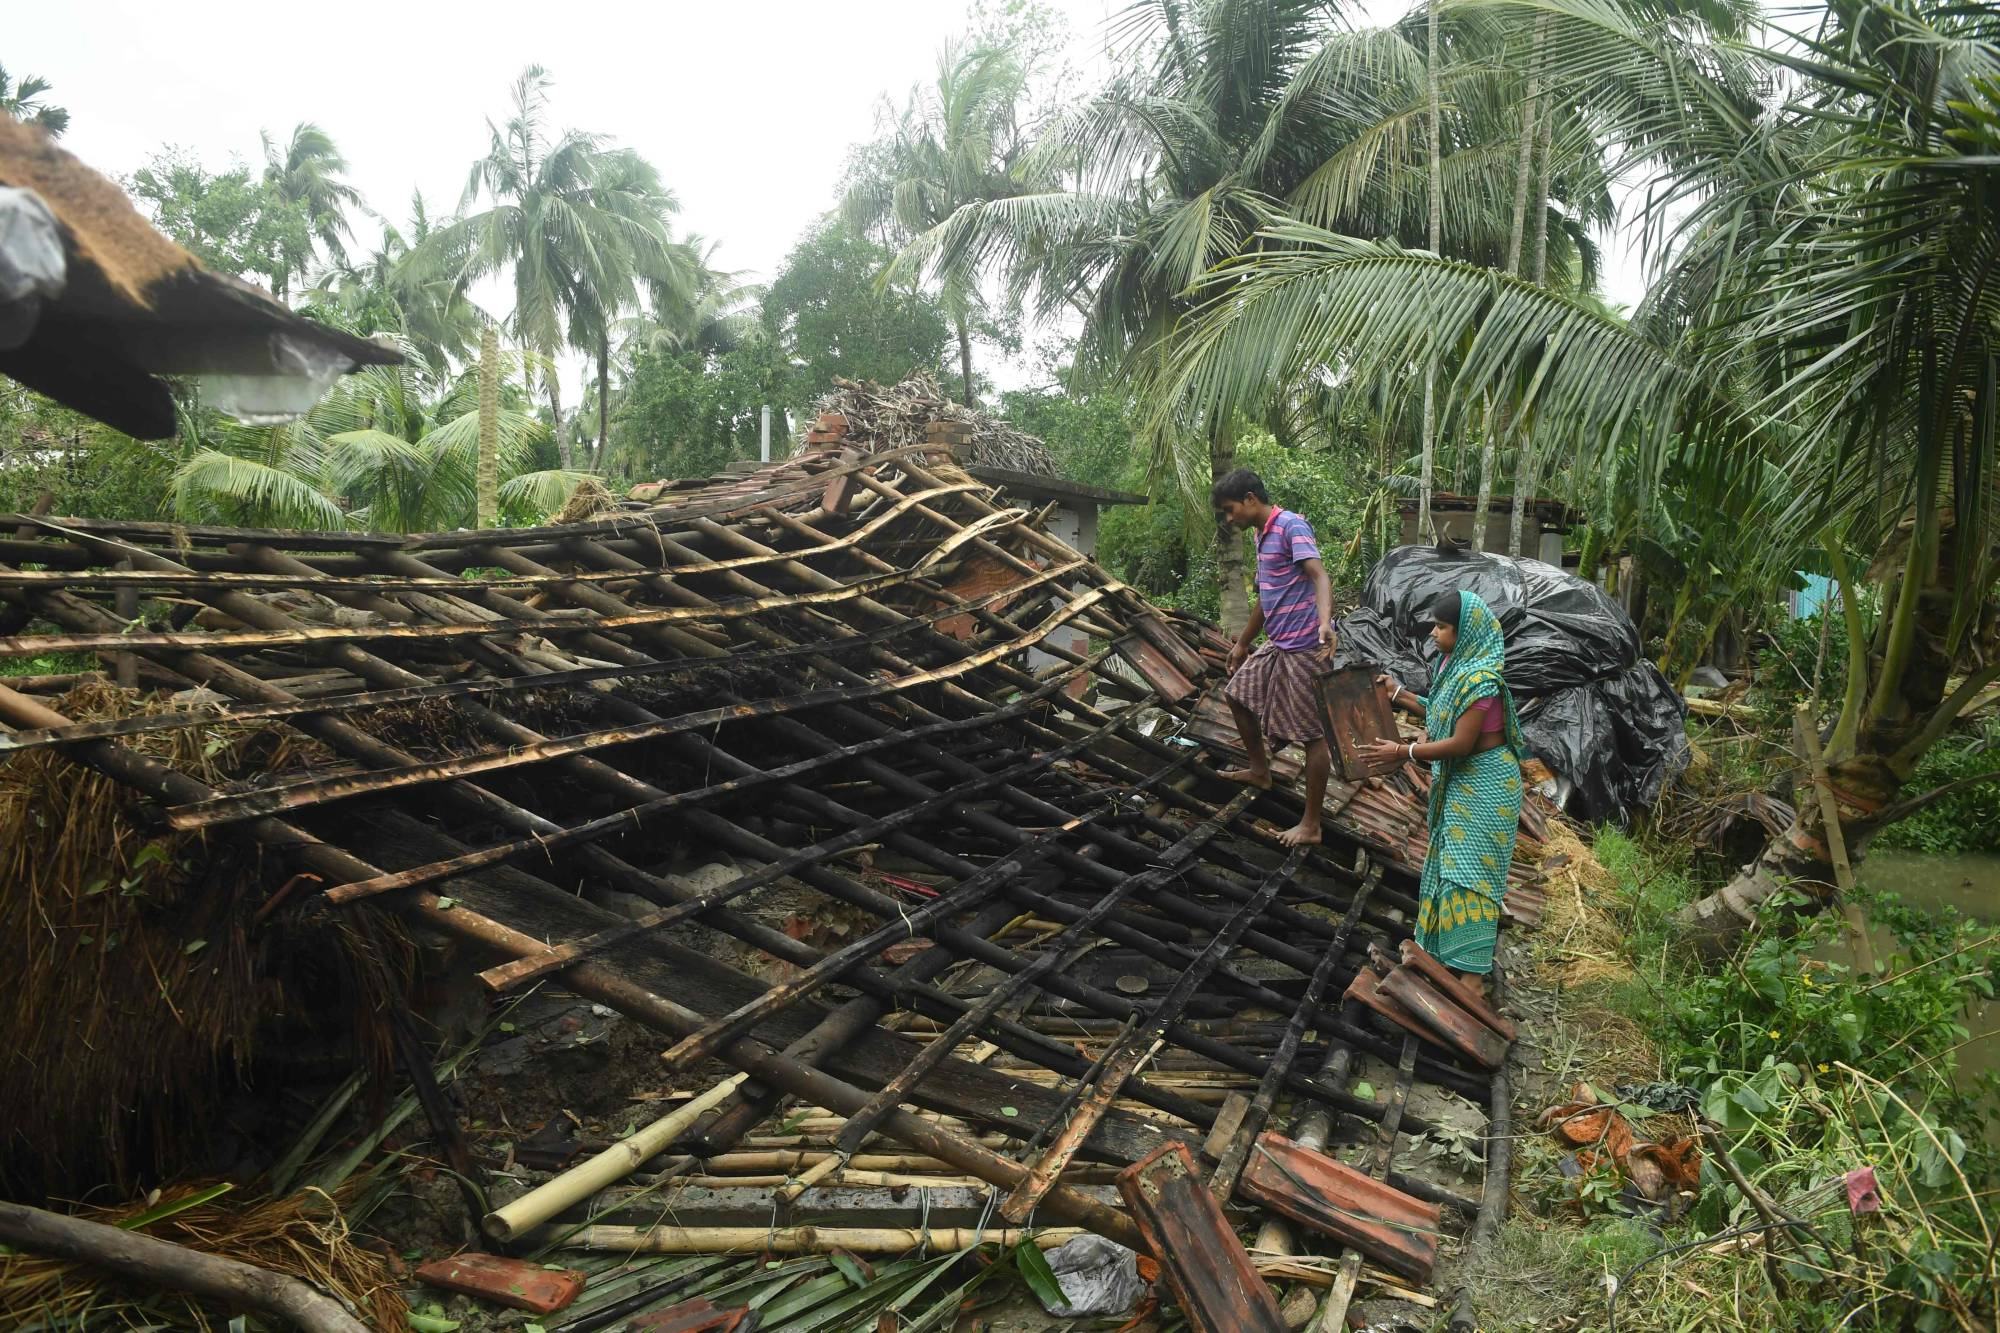 Residents repair the damaged roof of their house following the landfall of Cyclone Amphan in the Khejuri area of Midnapore, West Bengal, India, on Thursday. | AFP-JIJI